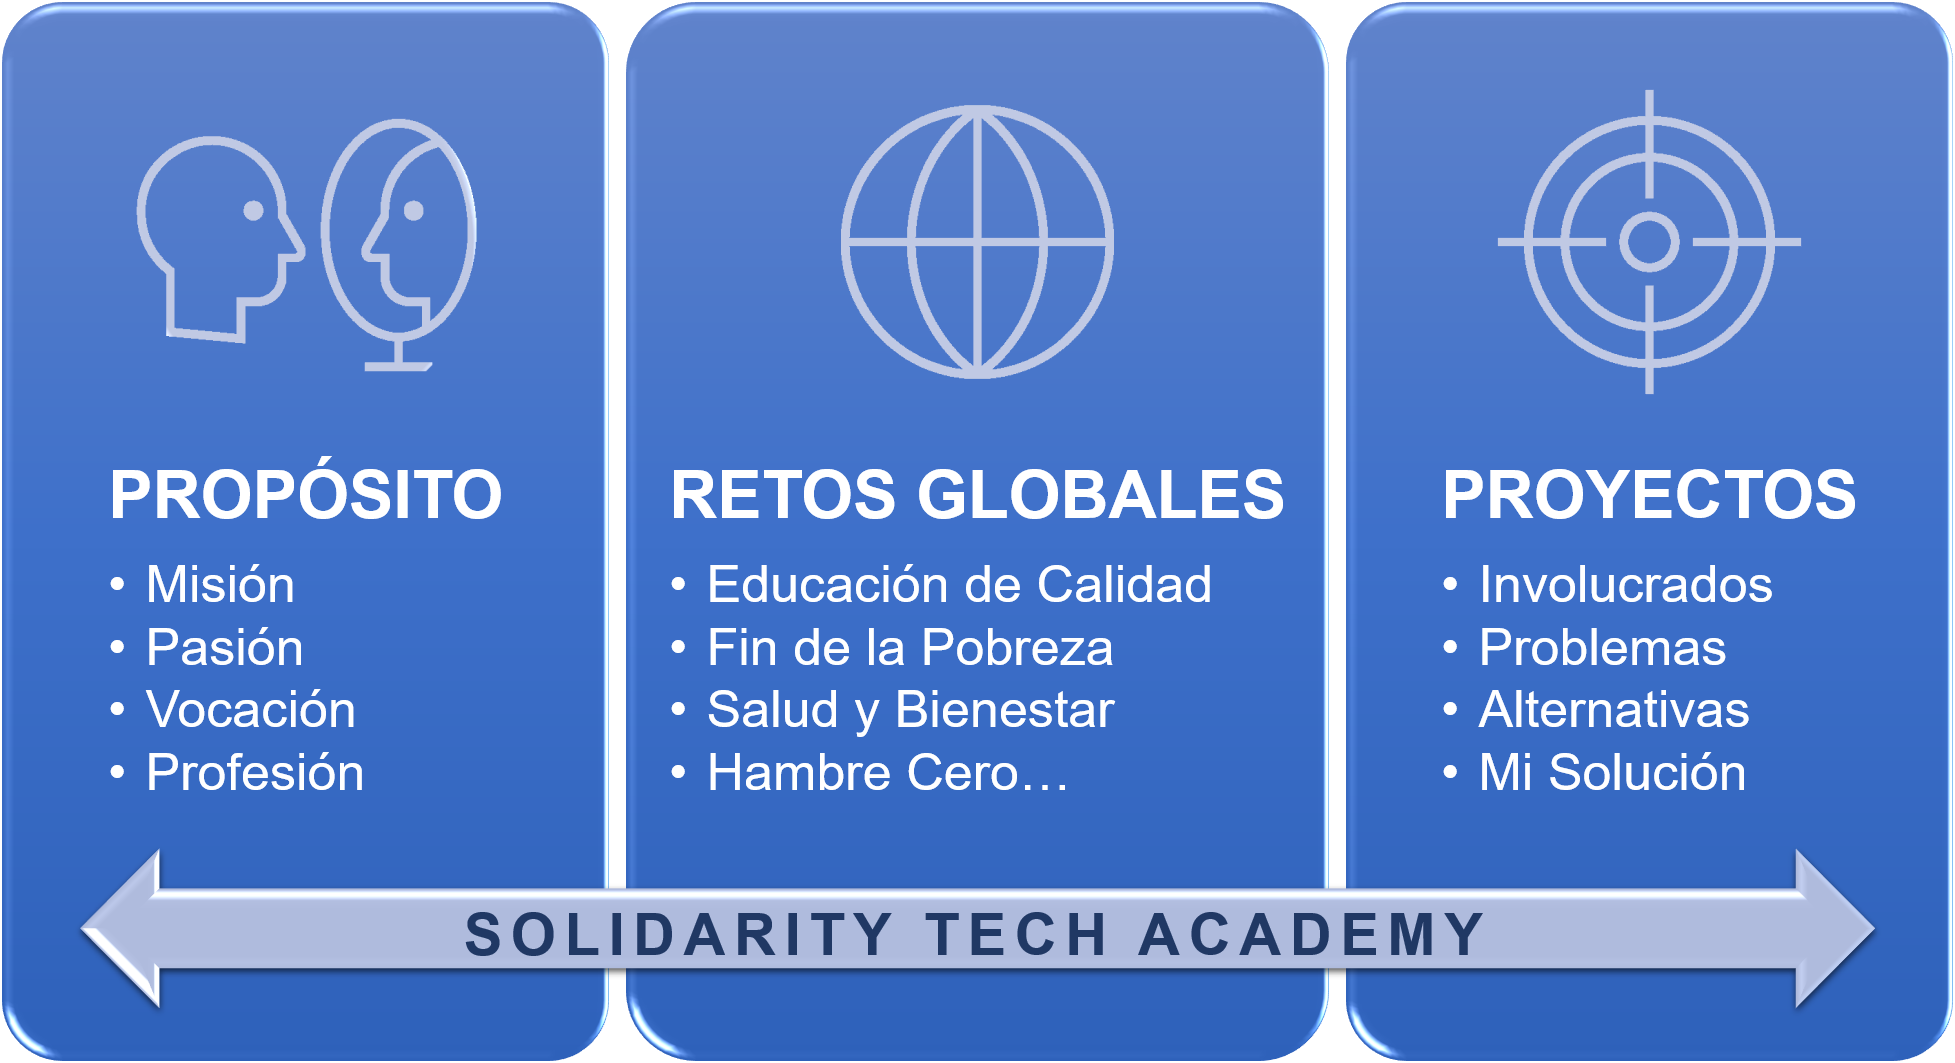 Pilares Solidarity Tech Academy